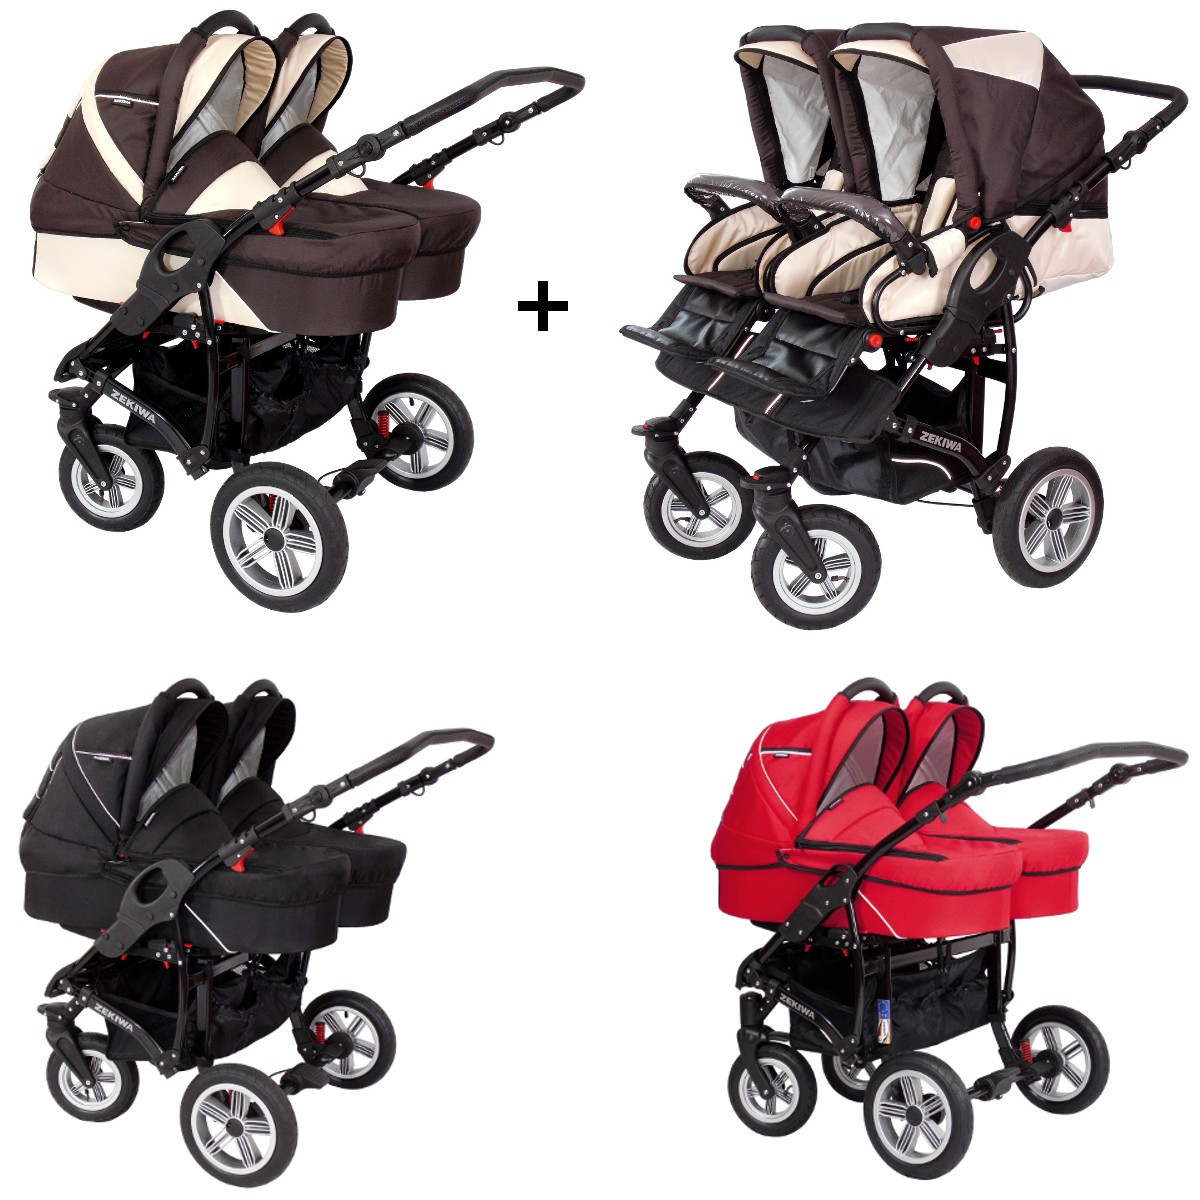 zekiwa sport duo zwillings geschwister kombi kinderwagen set 2in1 mit 2 babywannen 2. Black Bedroom Furniture Sets. Home Design Ideas